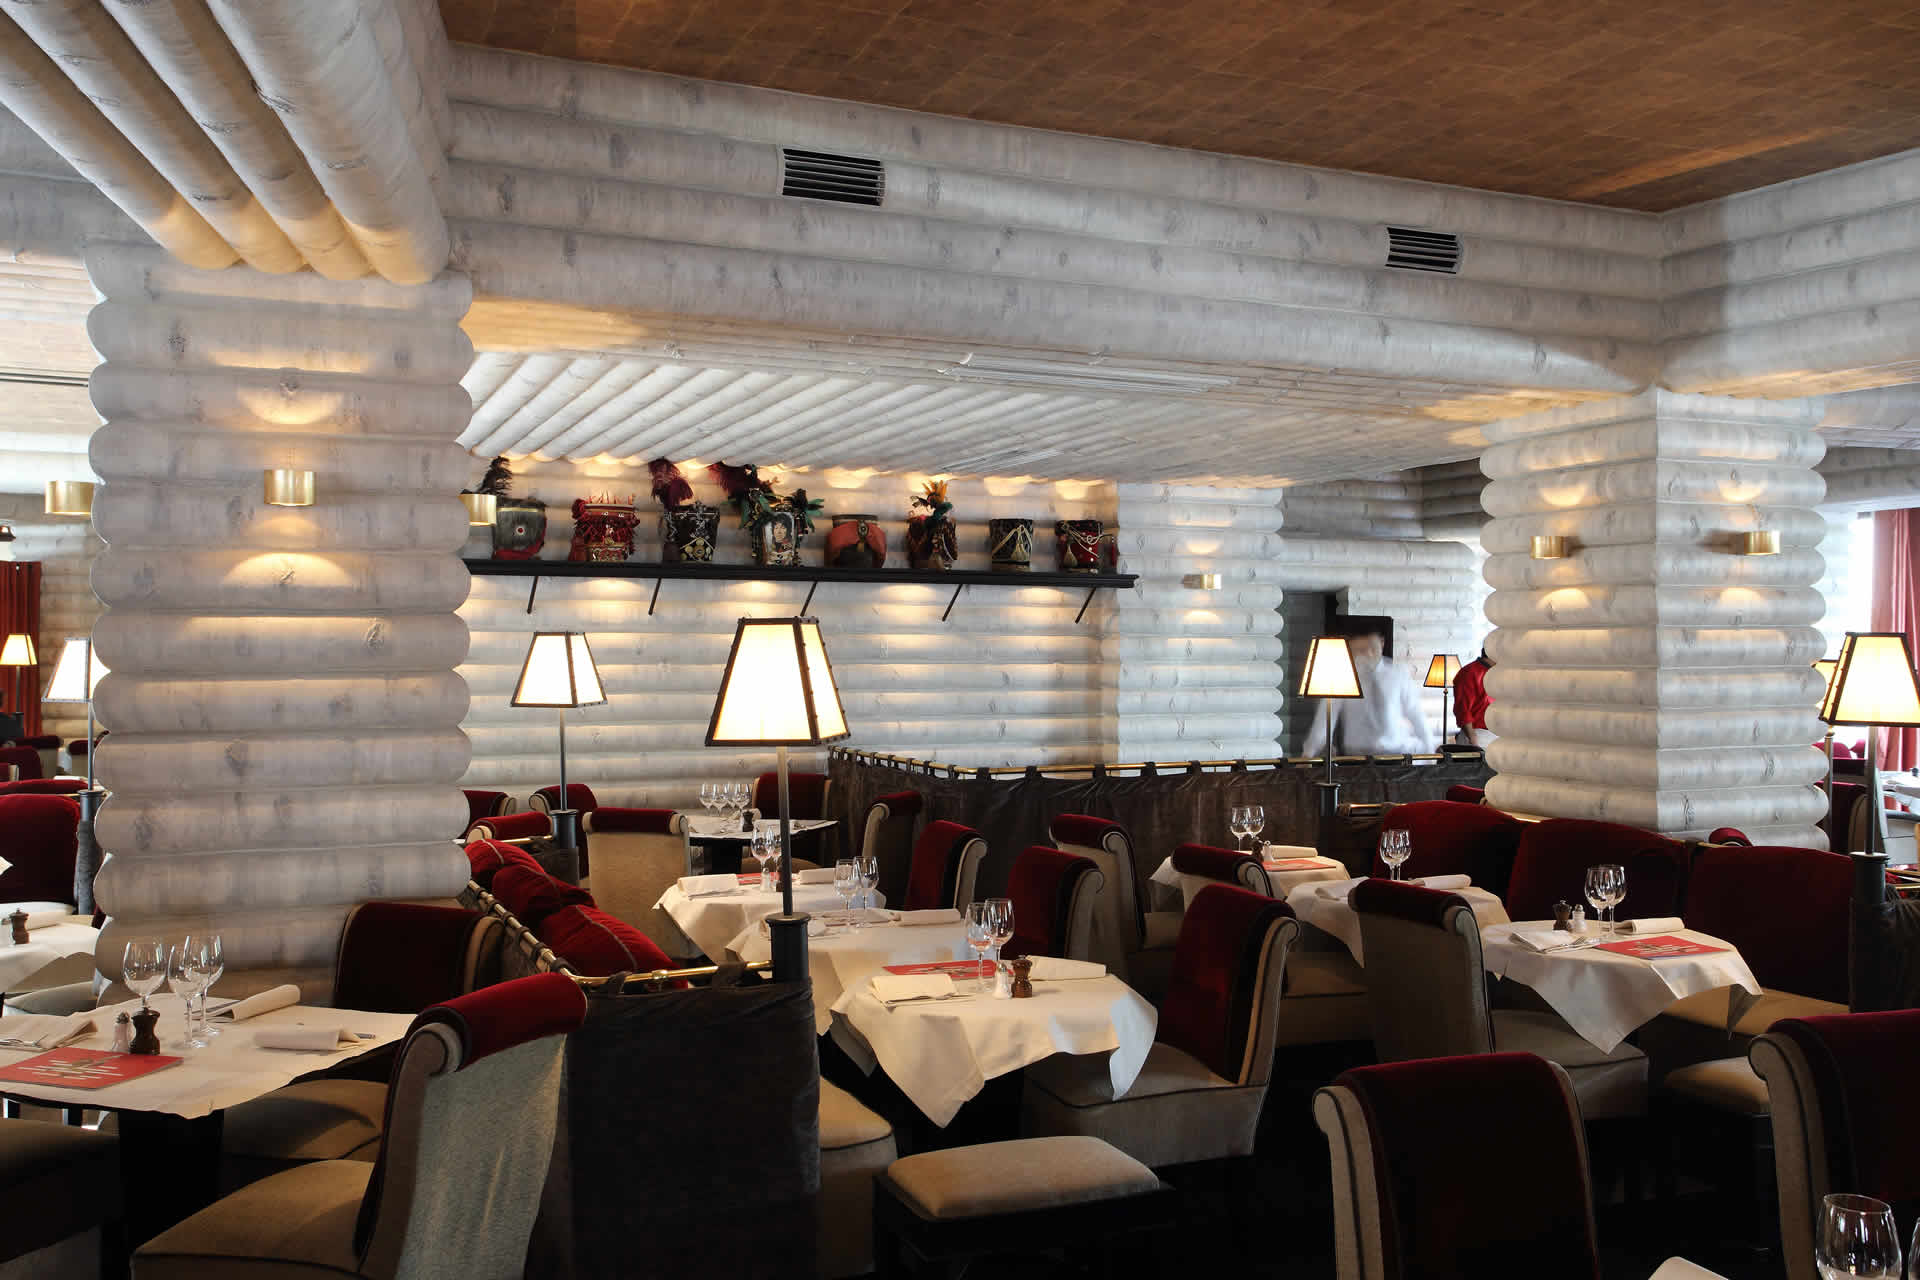 The Best of Interior Design in Restaurants in Paris!  best of interior design The Best of Interior Design in Restaurants in Paris! The Best of Interior Design in Restaurants in Paris 4